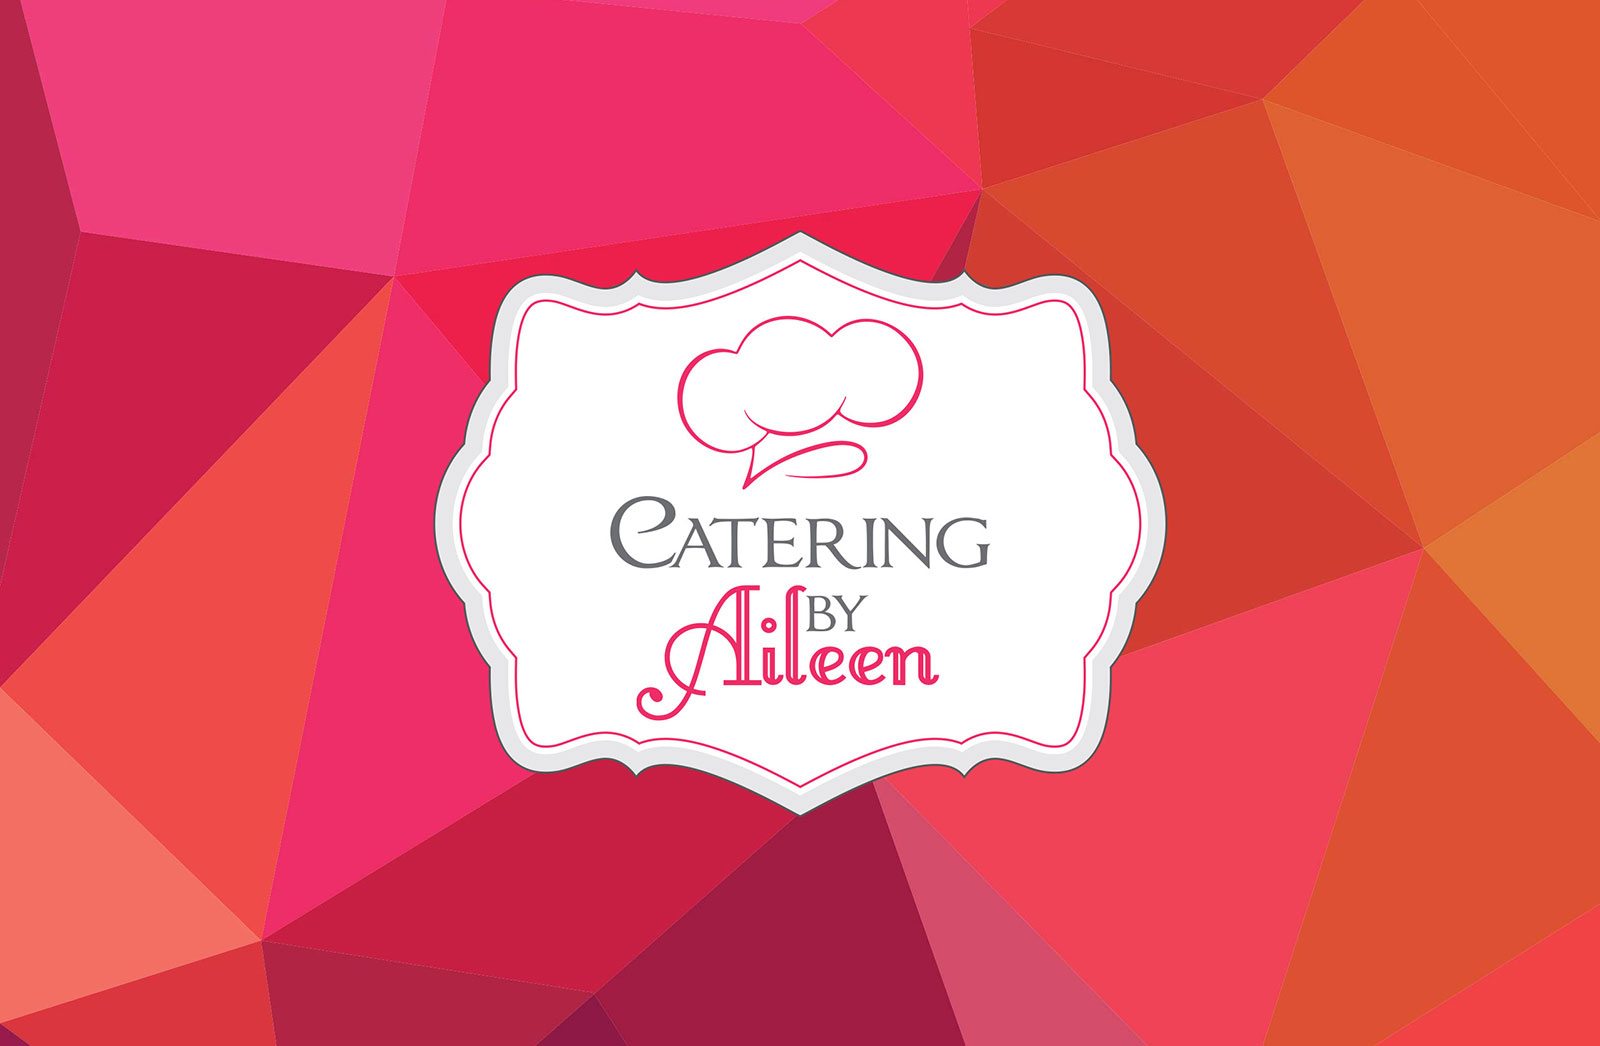 Catering by Aileen